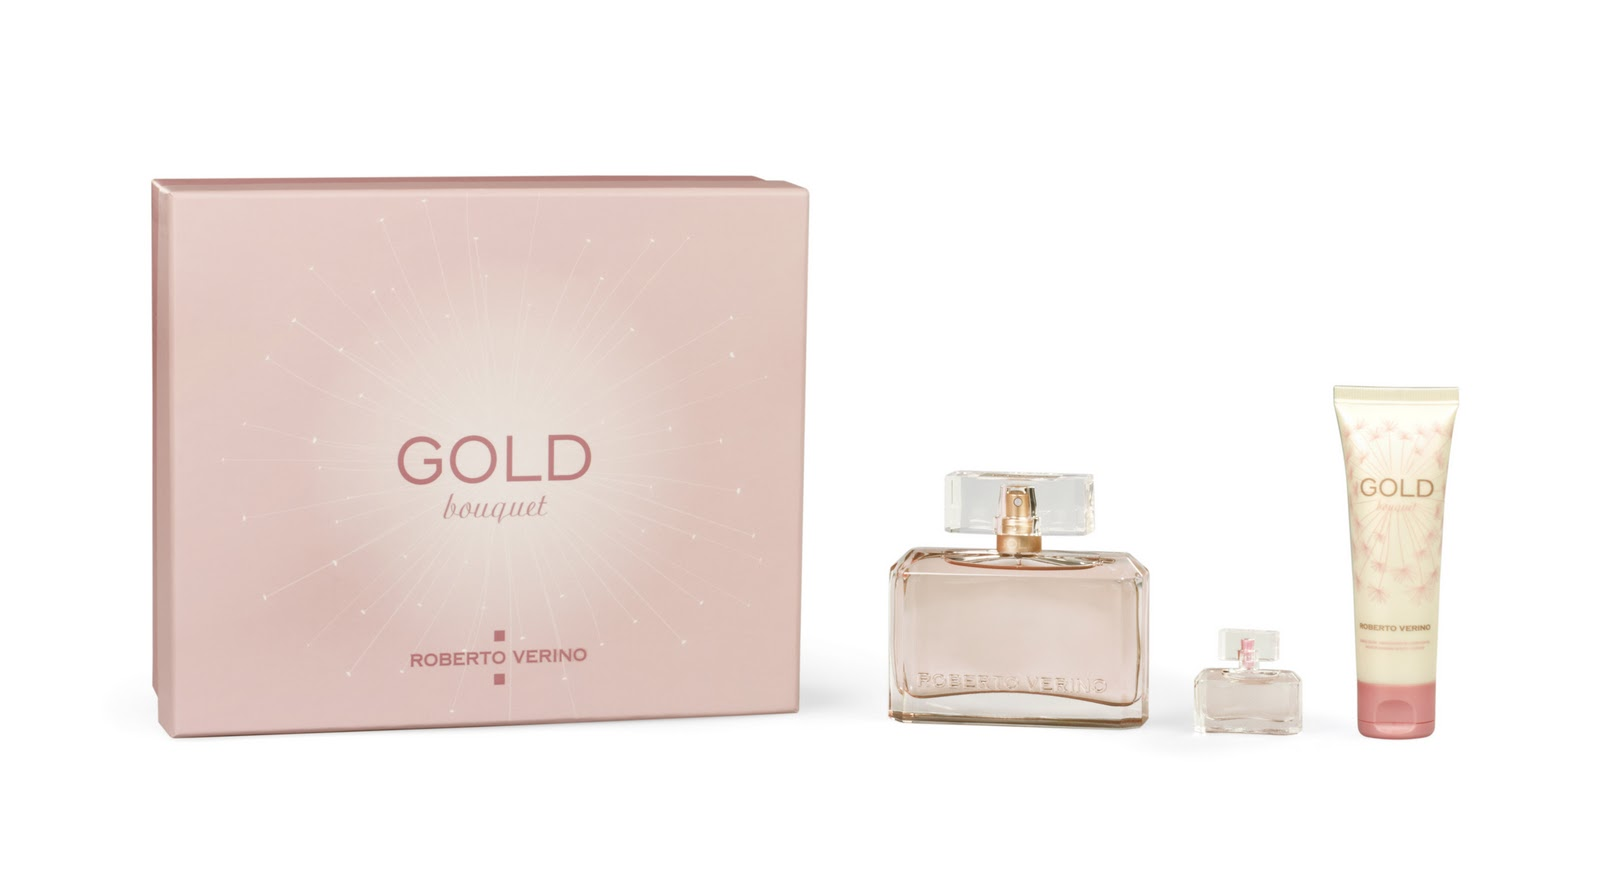 estuche de la fragancia Gold Bouquet